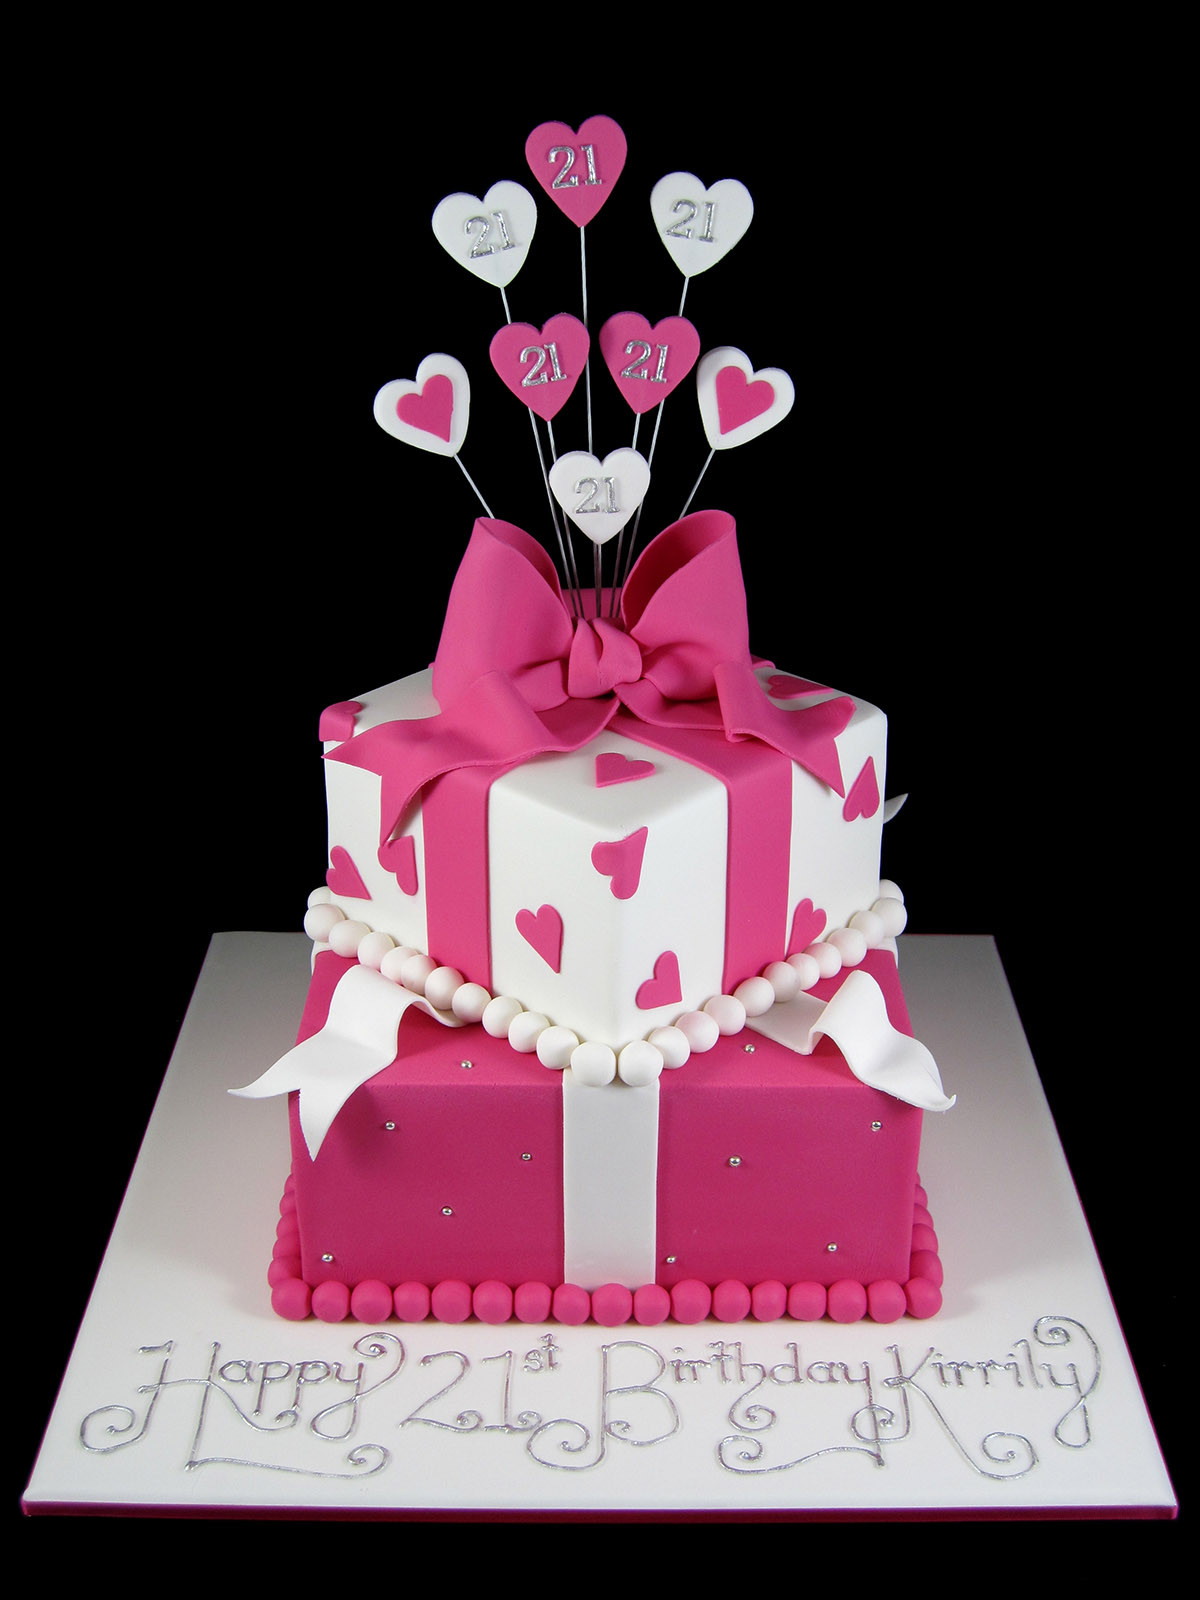 Birthday Cake Designs  Birthday cakes for women images and pictures